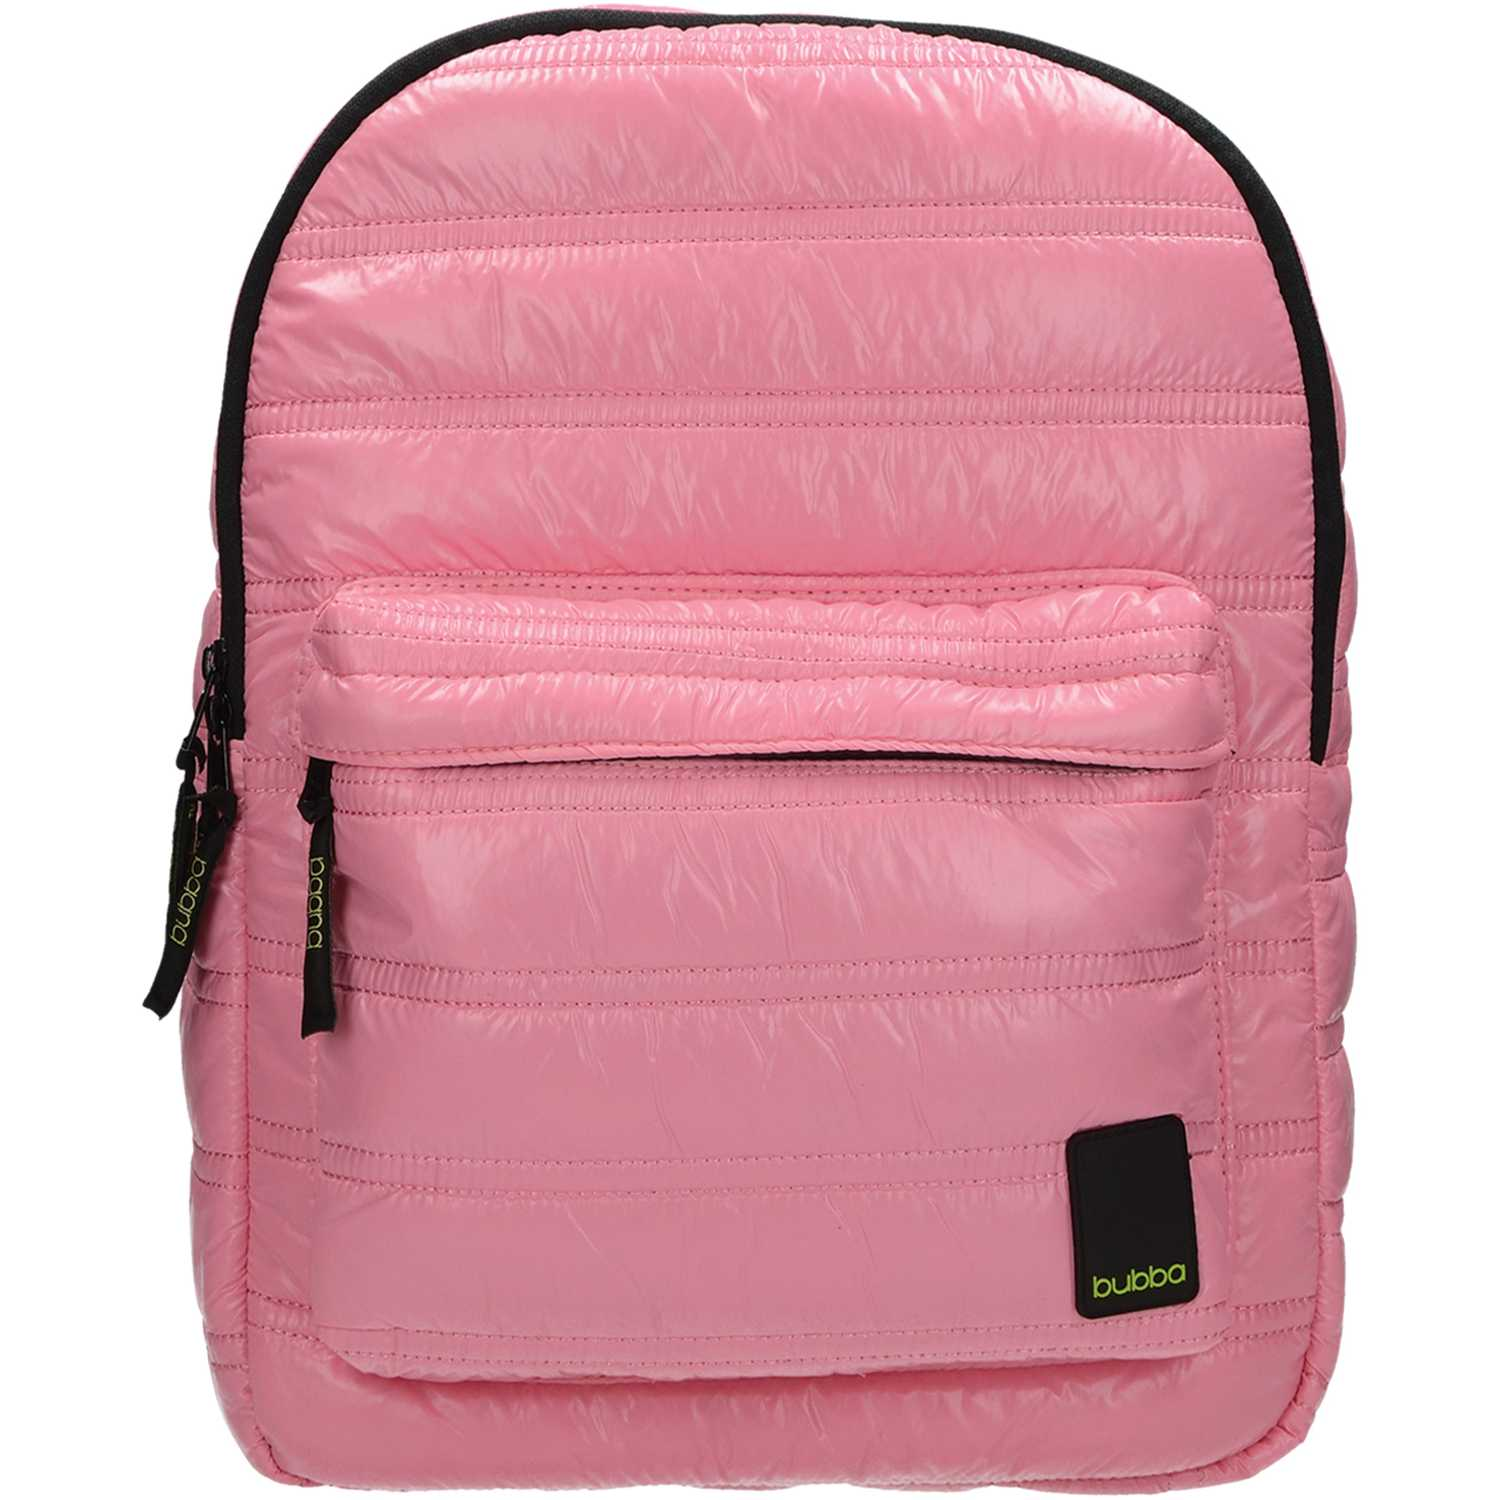 BUBBA Mochila Bubba Classic Regular Rosado Mochilas Multipropósitos